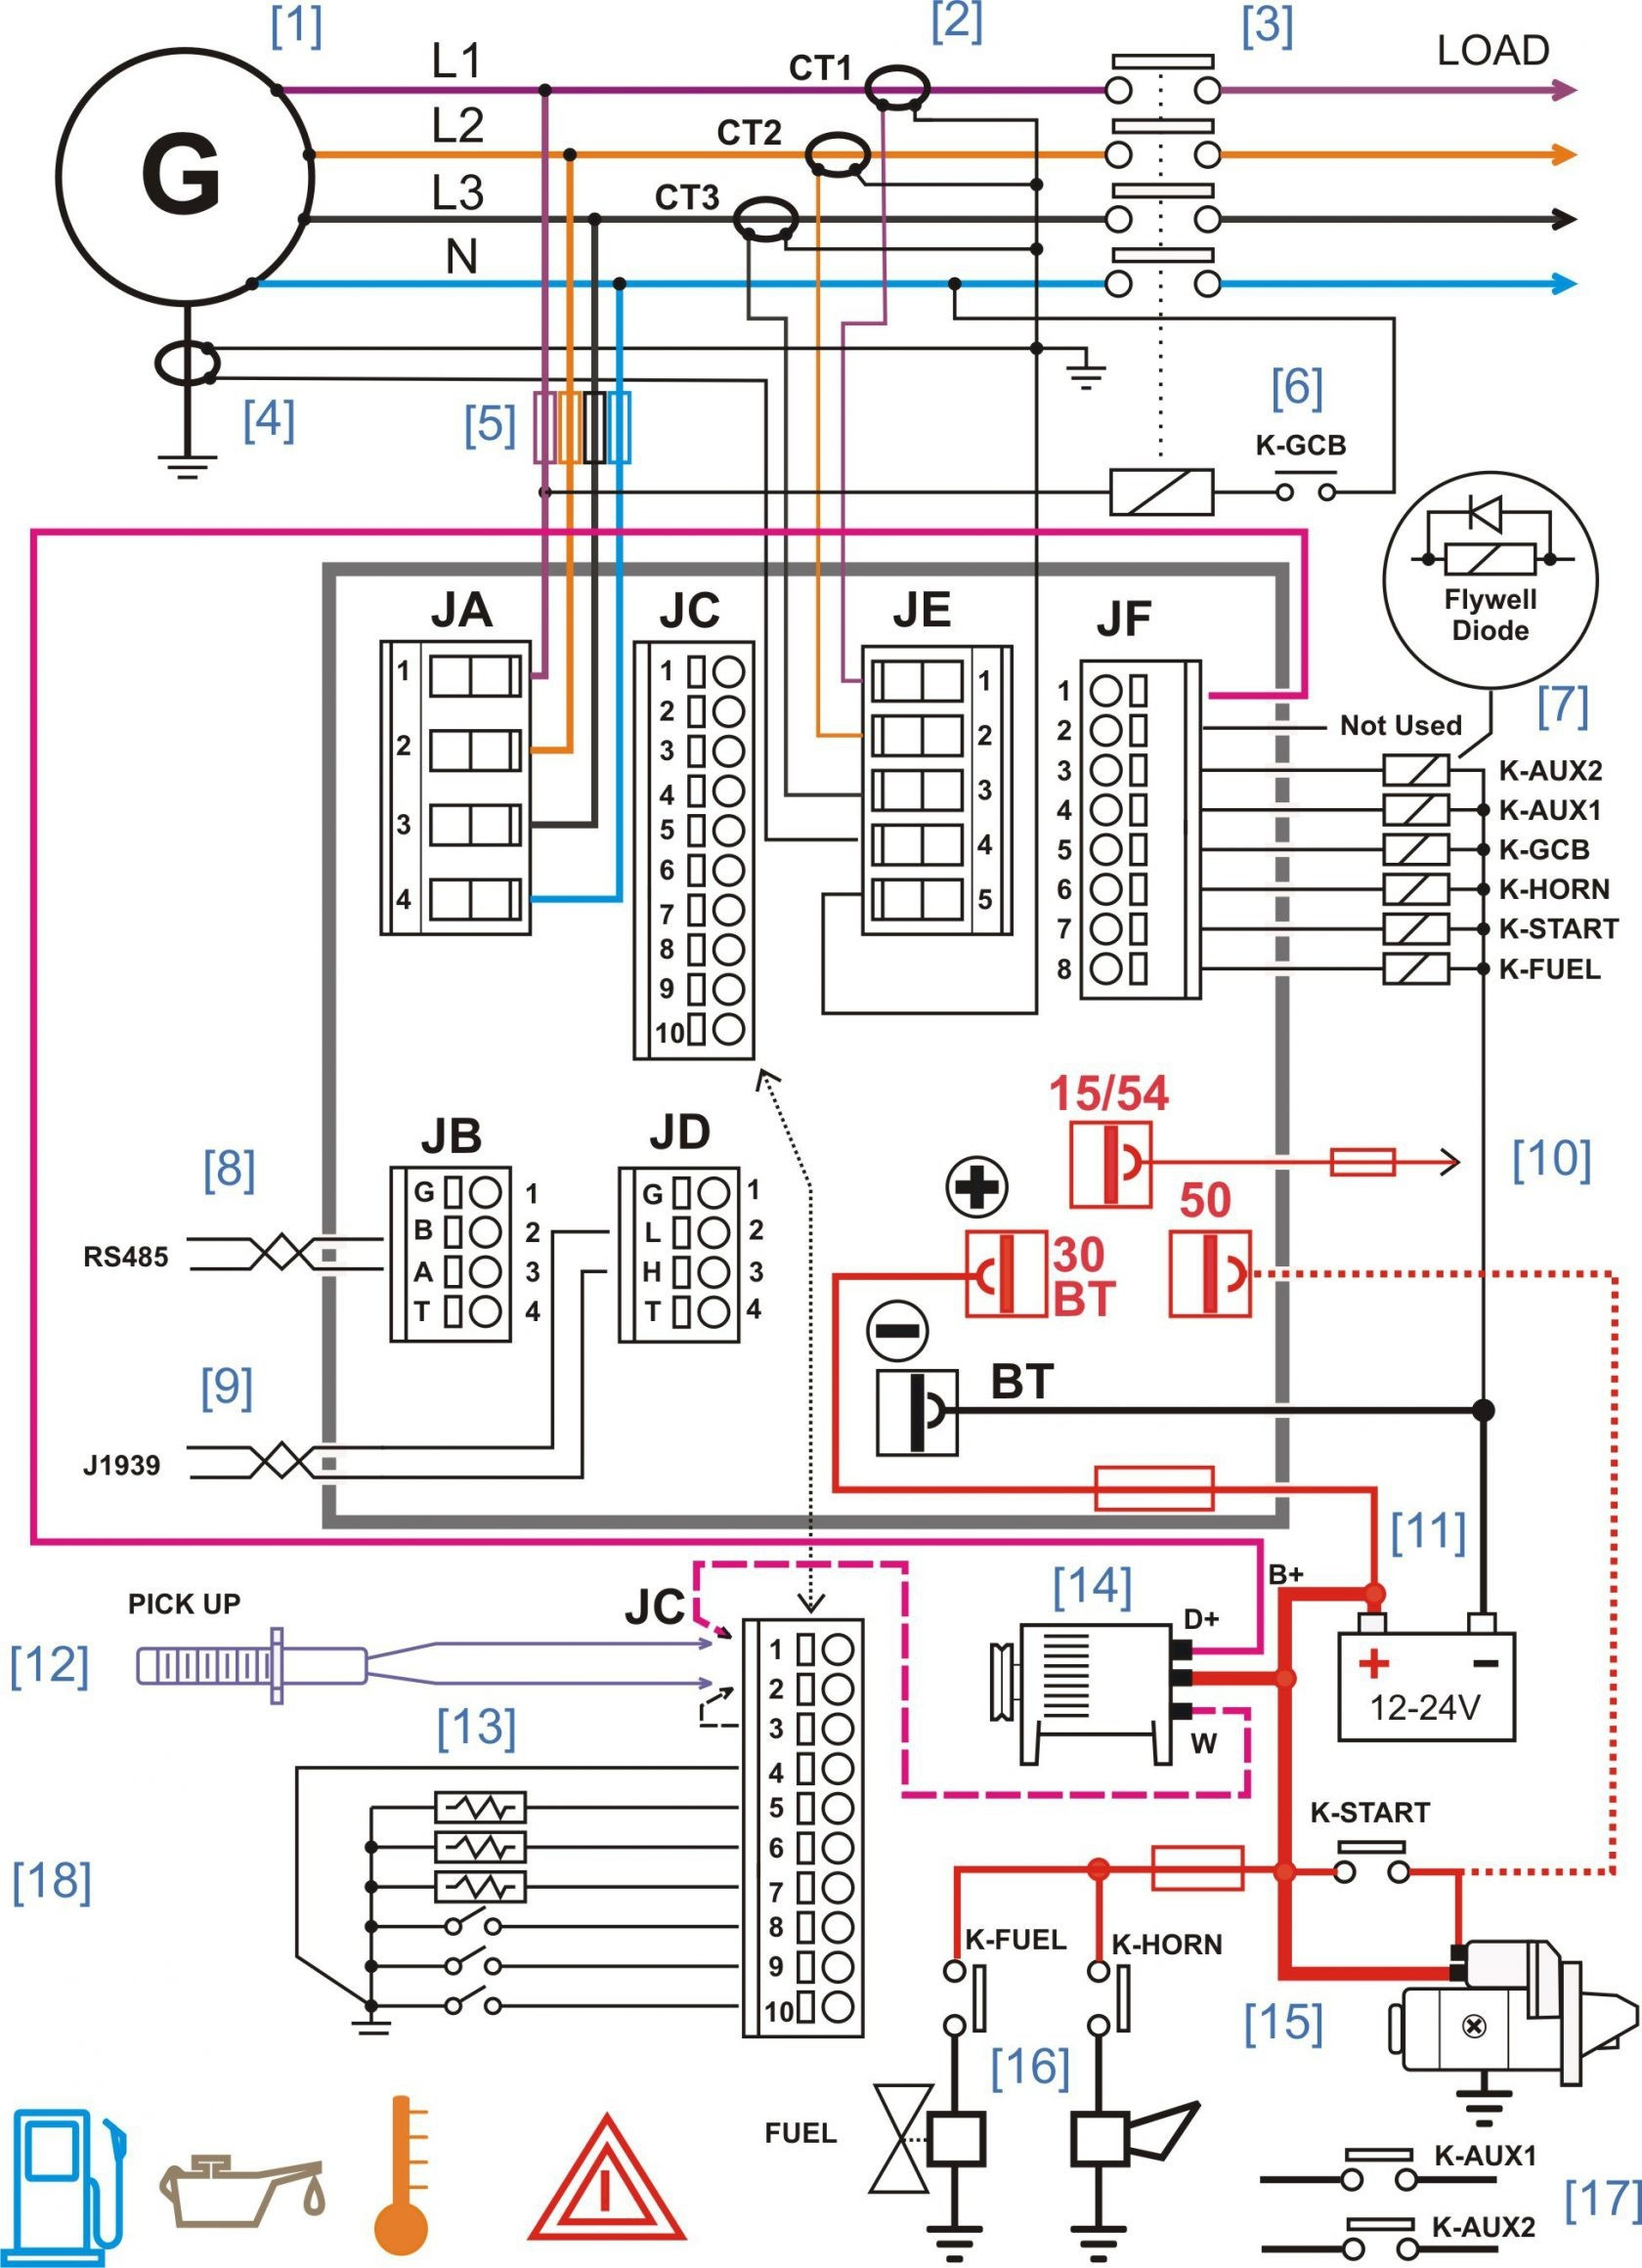 delco stereo wiring diagram Collection-Autozone Wiring Diagram Best Autozone Wiring Diagrams Best Wiring Diagram Delco Radio Model 9-m